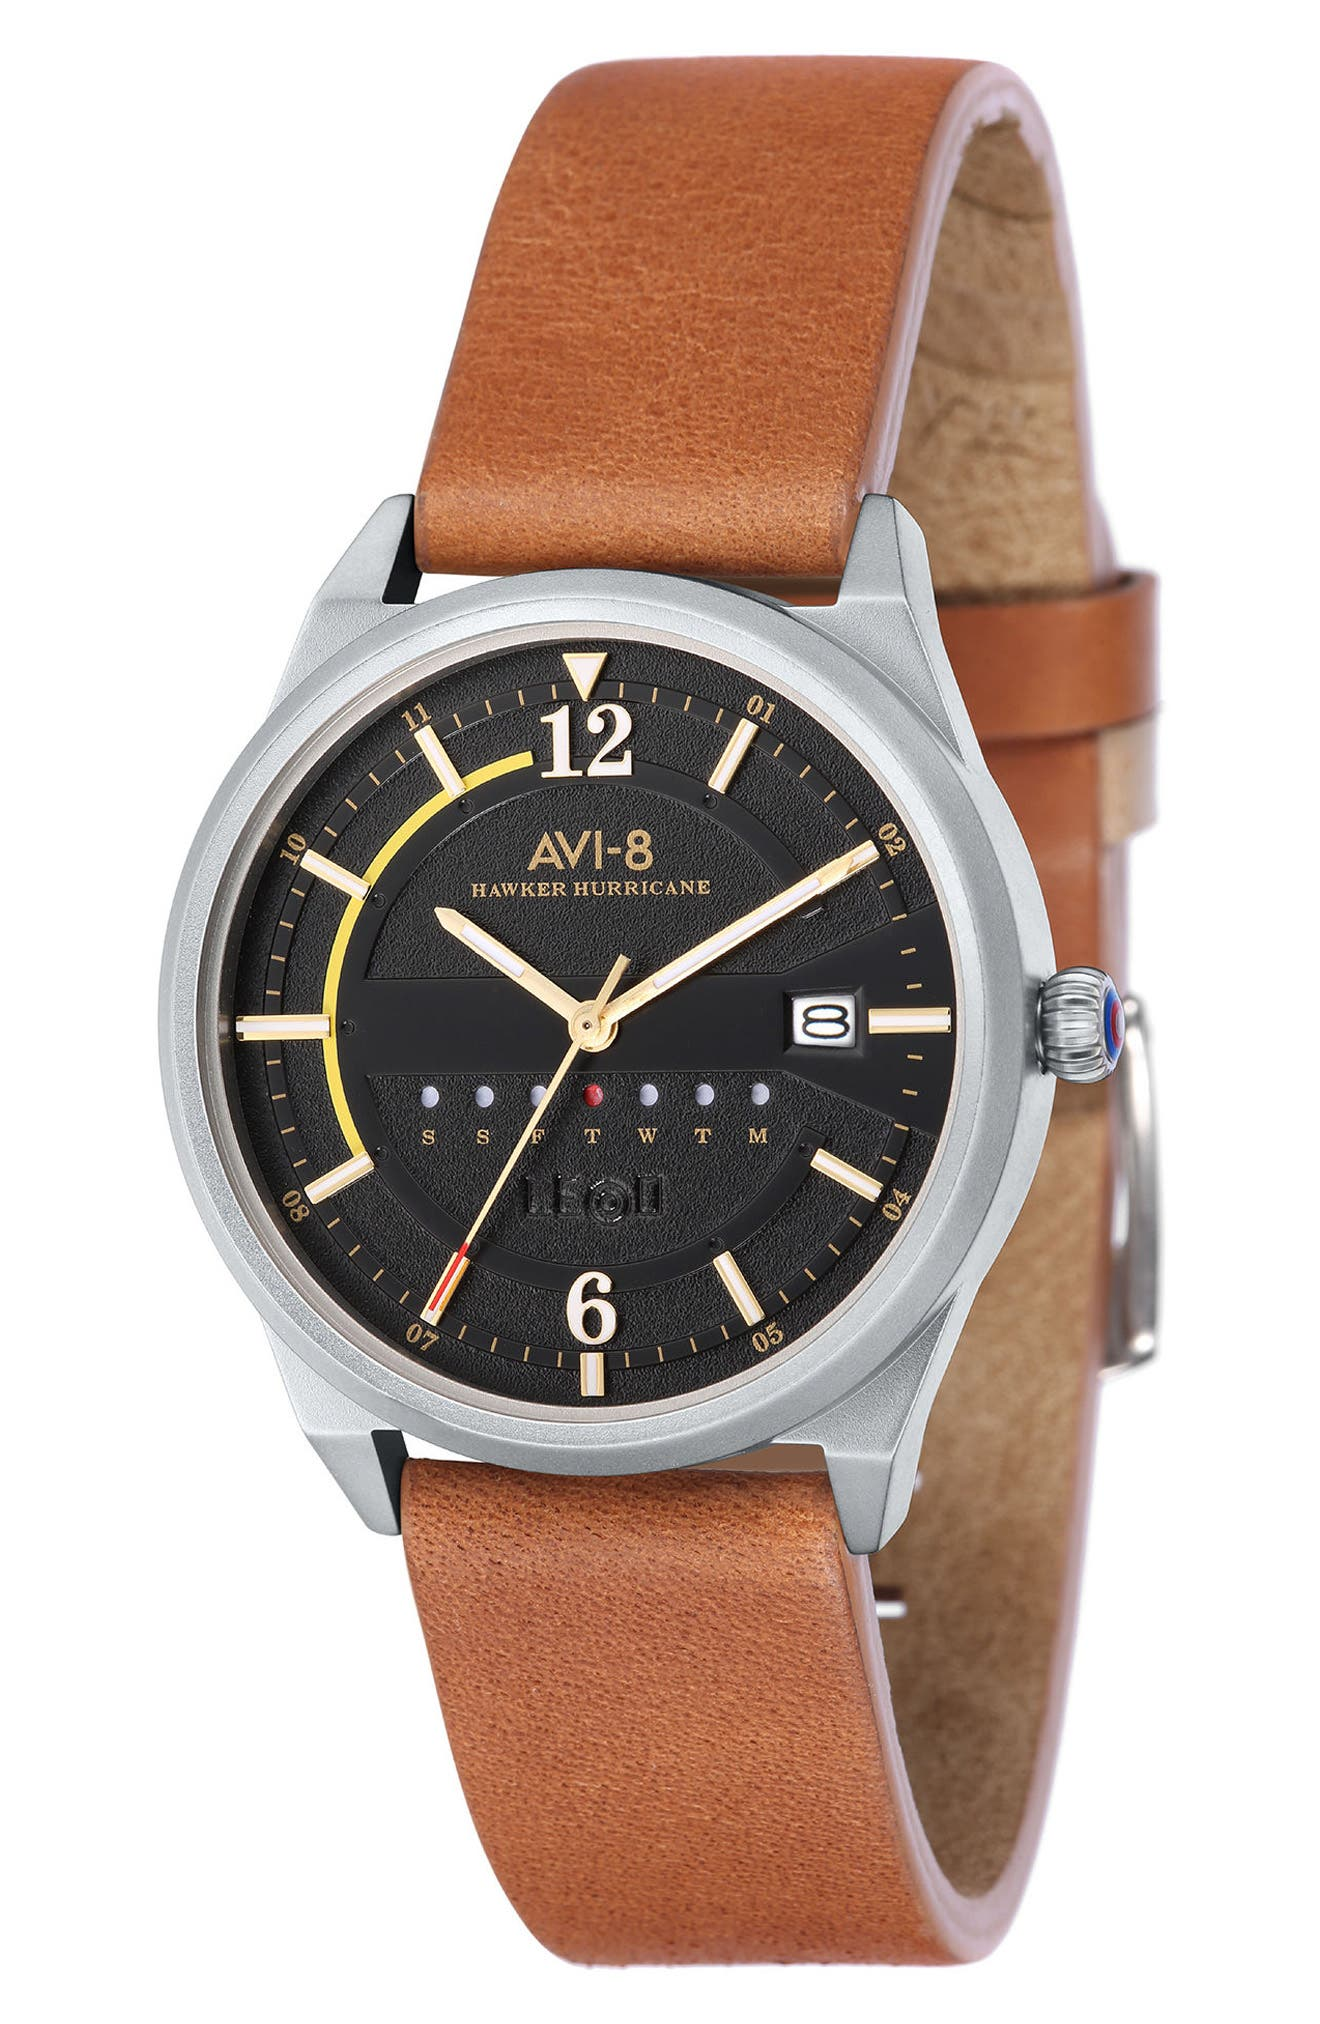 Main Image - AVI-8 Hawker Hurricane Leather Strap Watch, 38mm